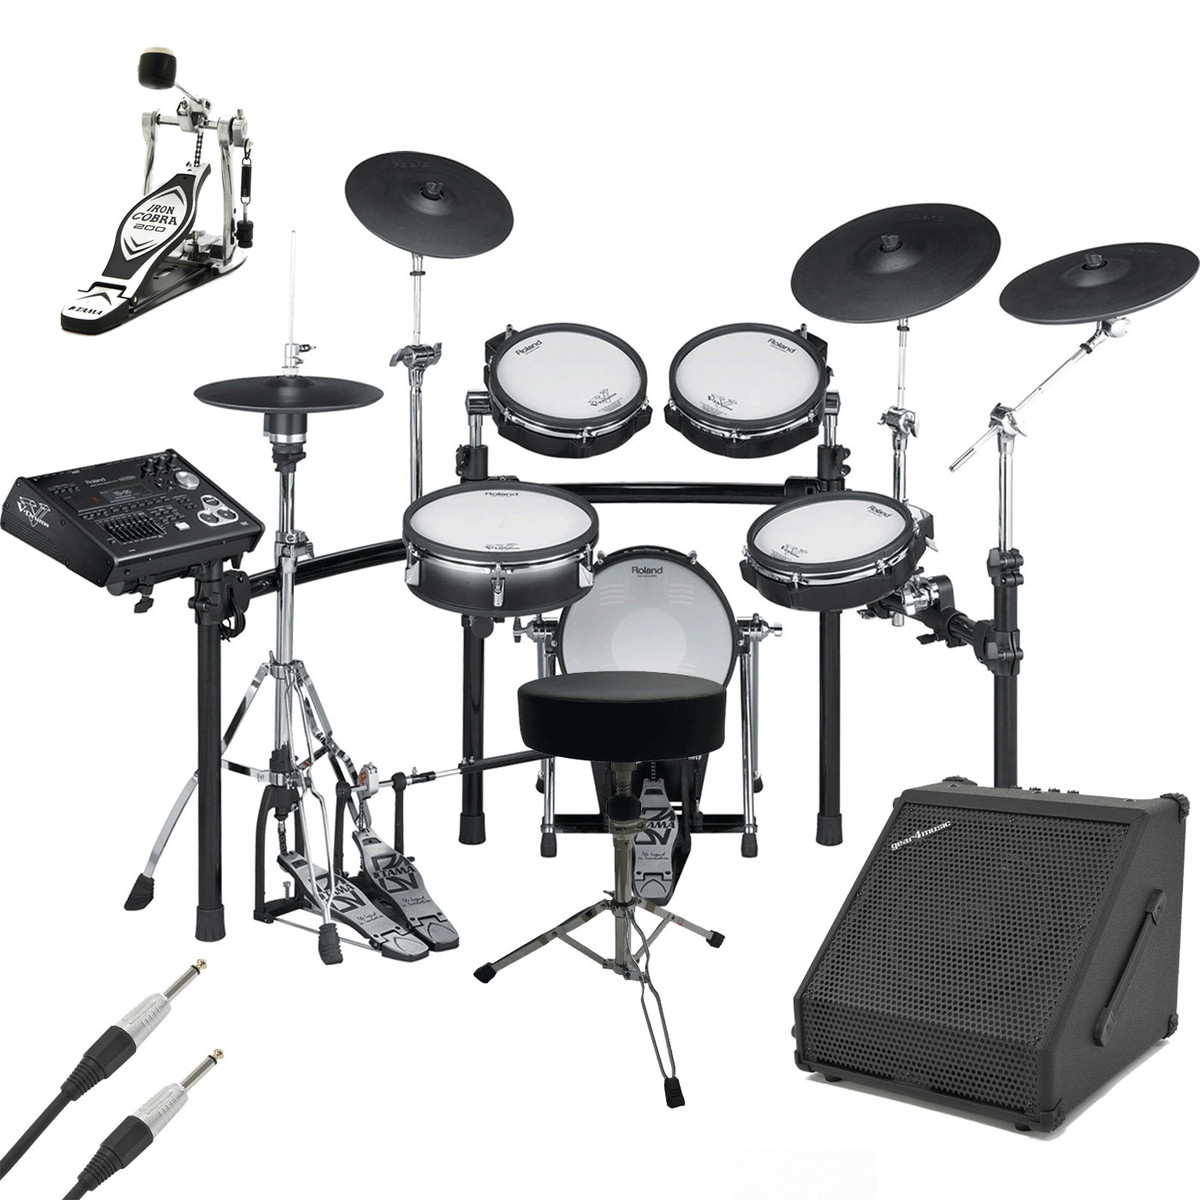 disc roland td 30k v pro electronic drum kit with amp and accessories at. Black Bedroom Furniture Sets. Home Design Ideas